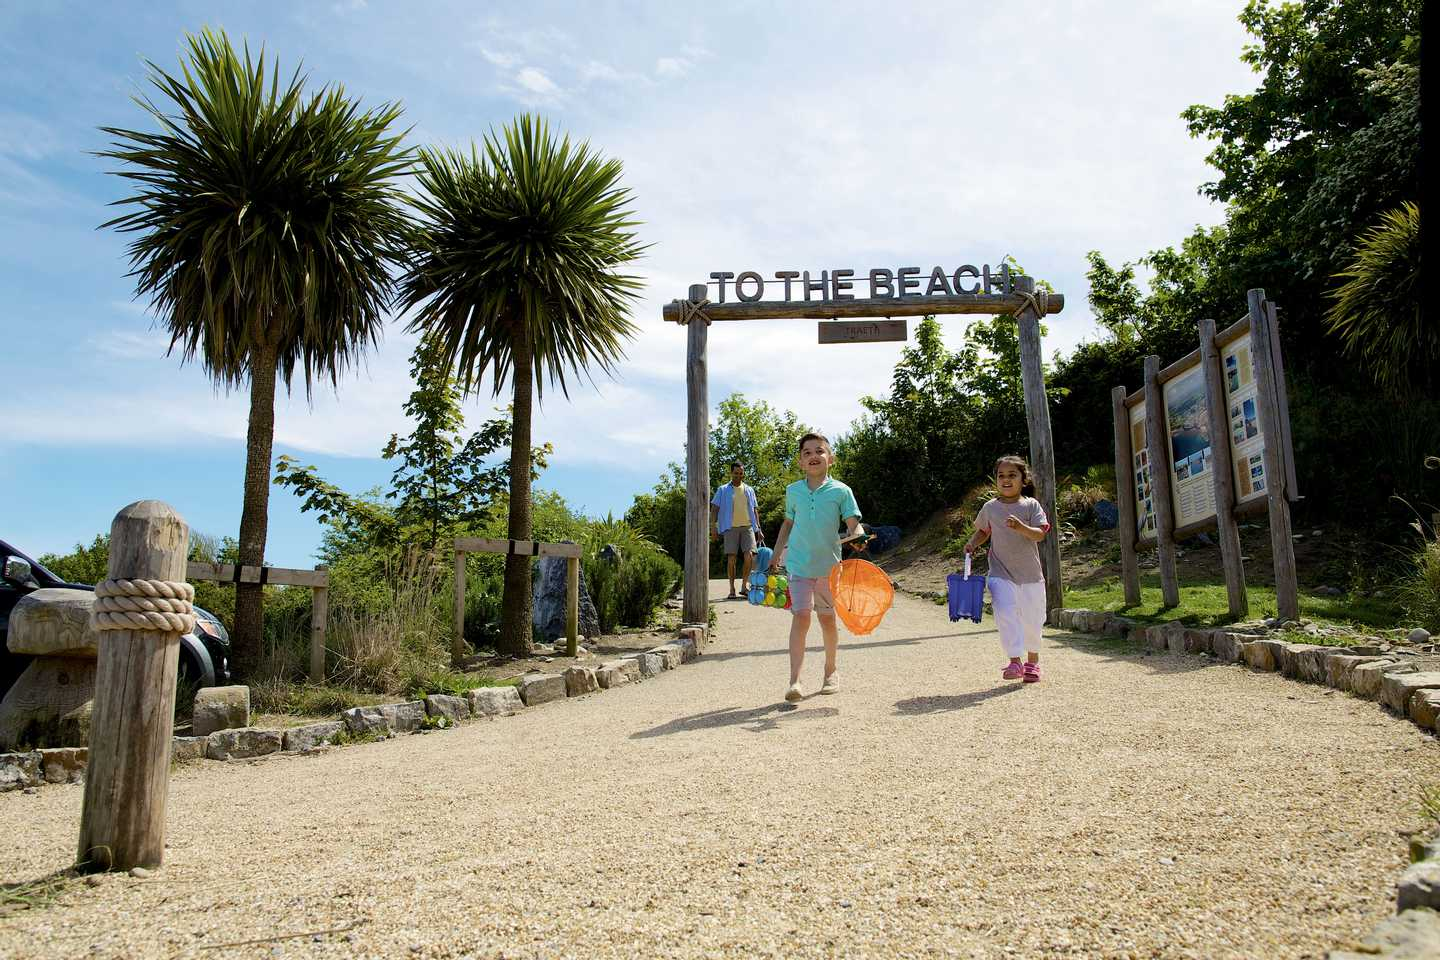 Guests walking to the beach from Kiln Park